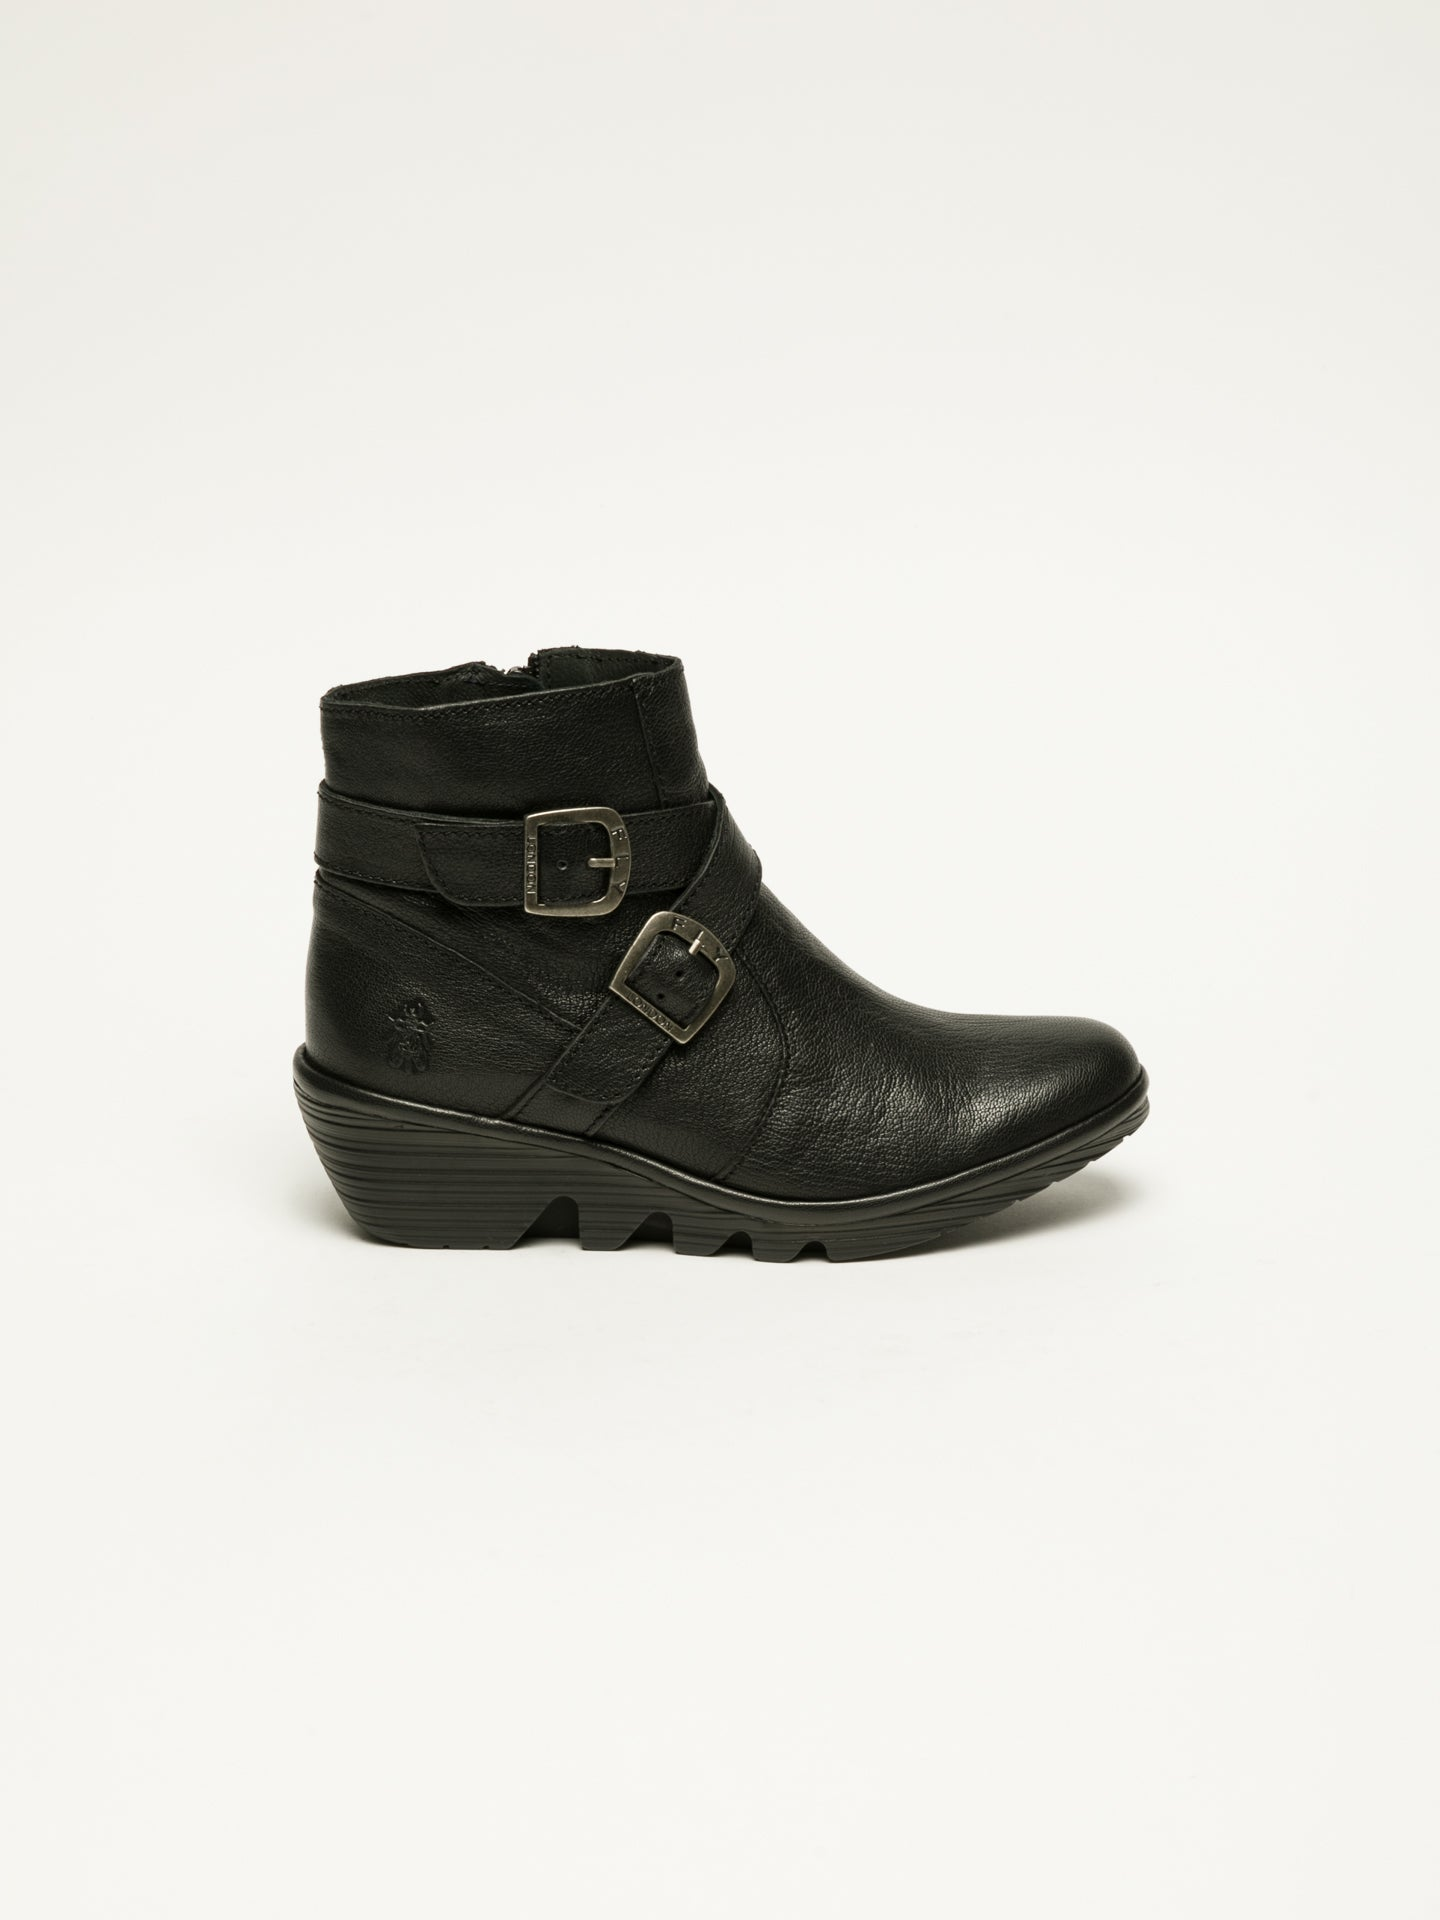 Fly London Black Buckle Ankle Boots